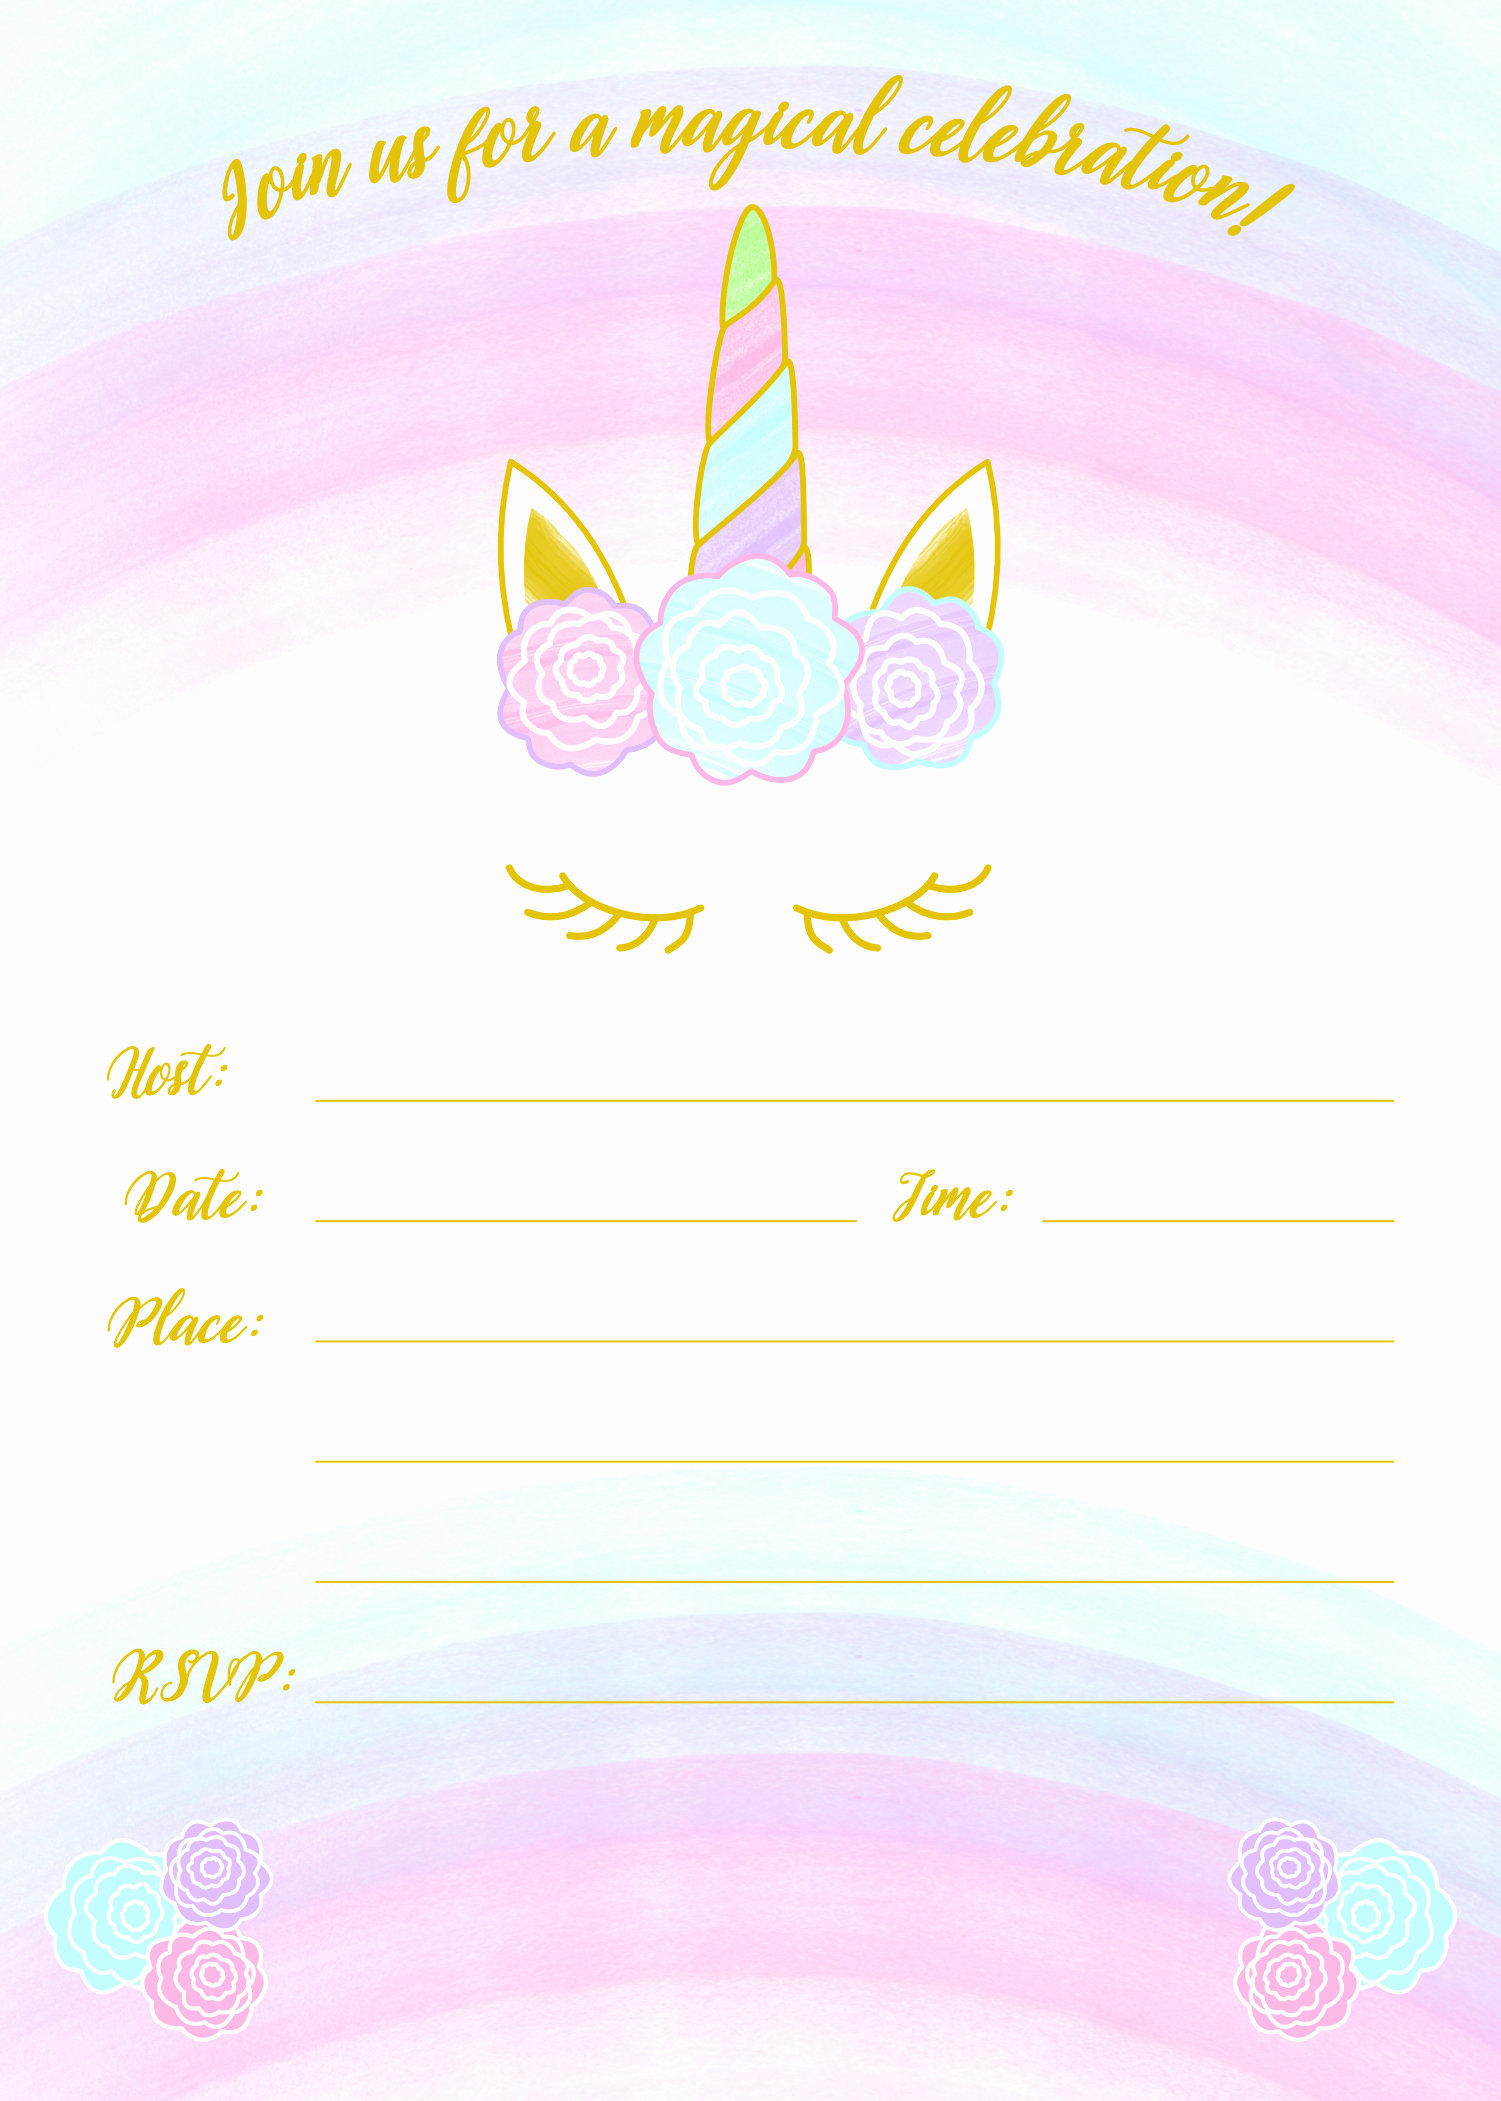 Free Unicorn Invitation Template Inspirational Unicorn Invitation Free Printable Templates Easy to